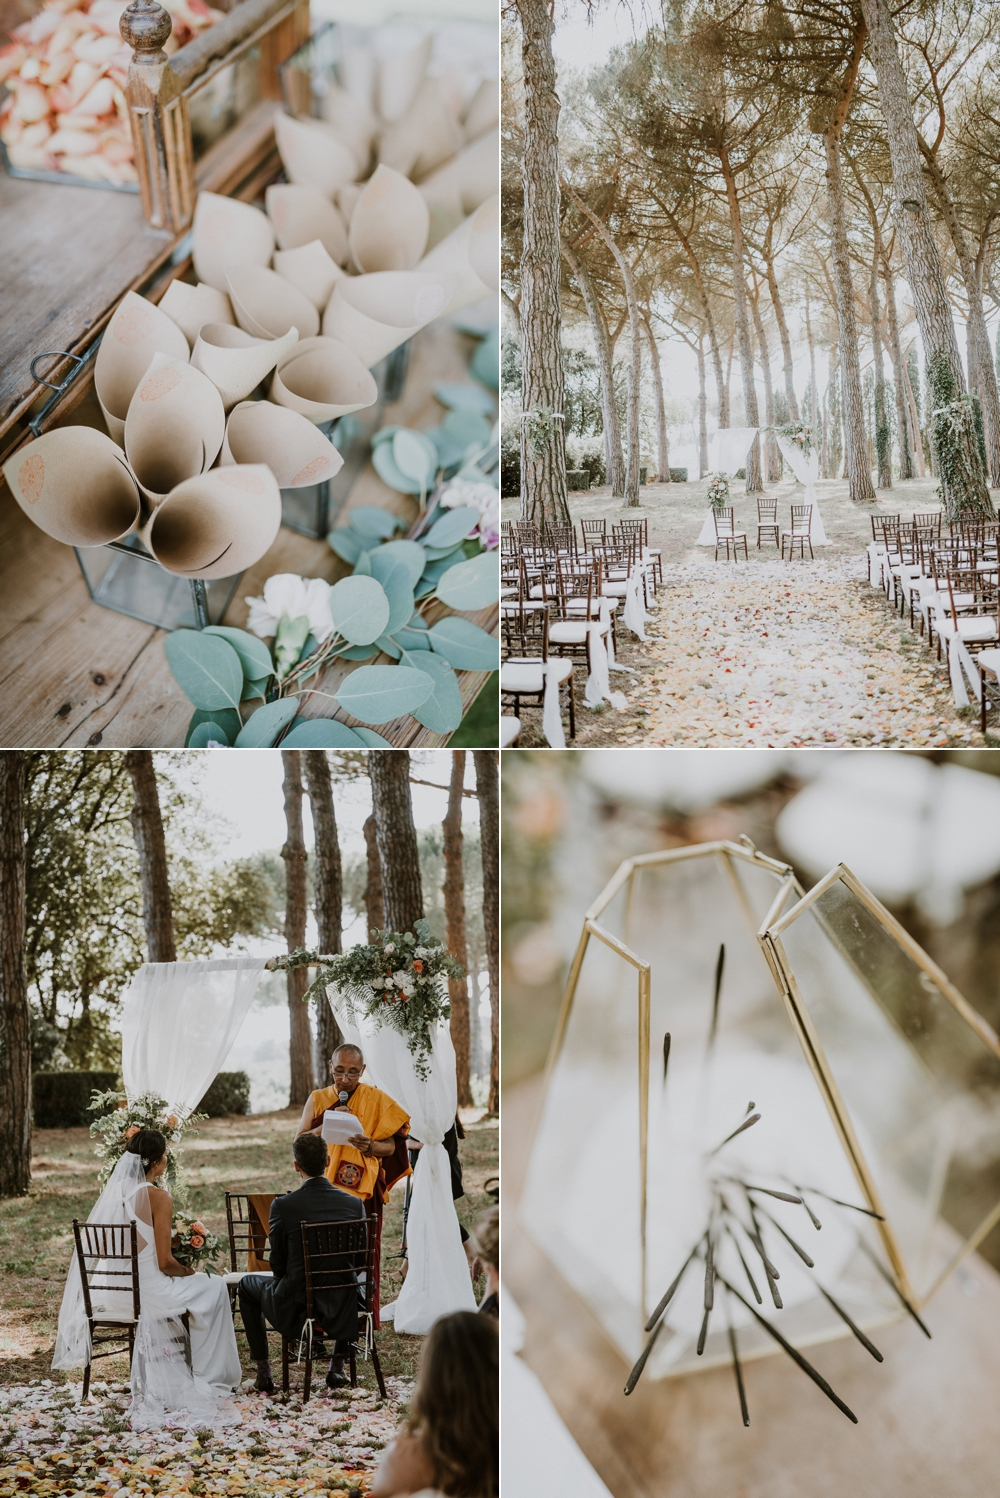 Buddhits wedding ceremony in Italy- Laura Bravi Events